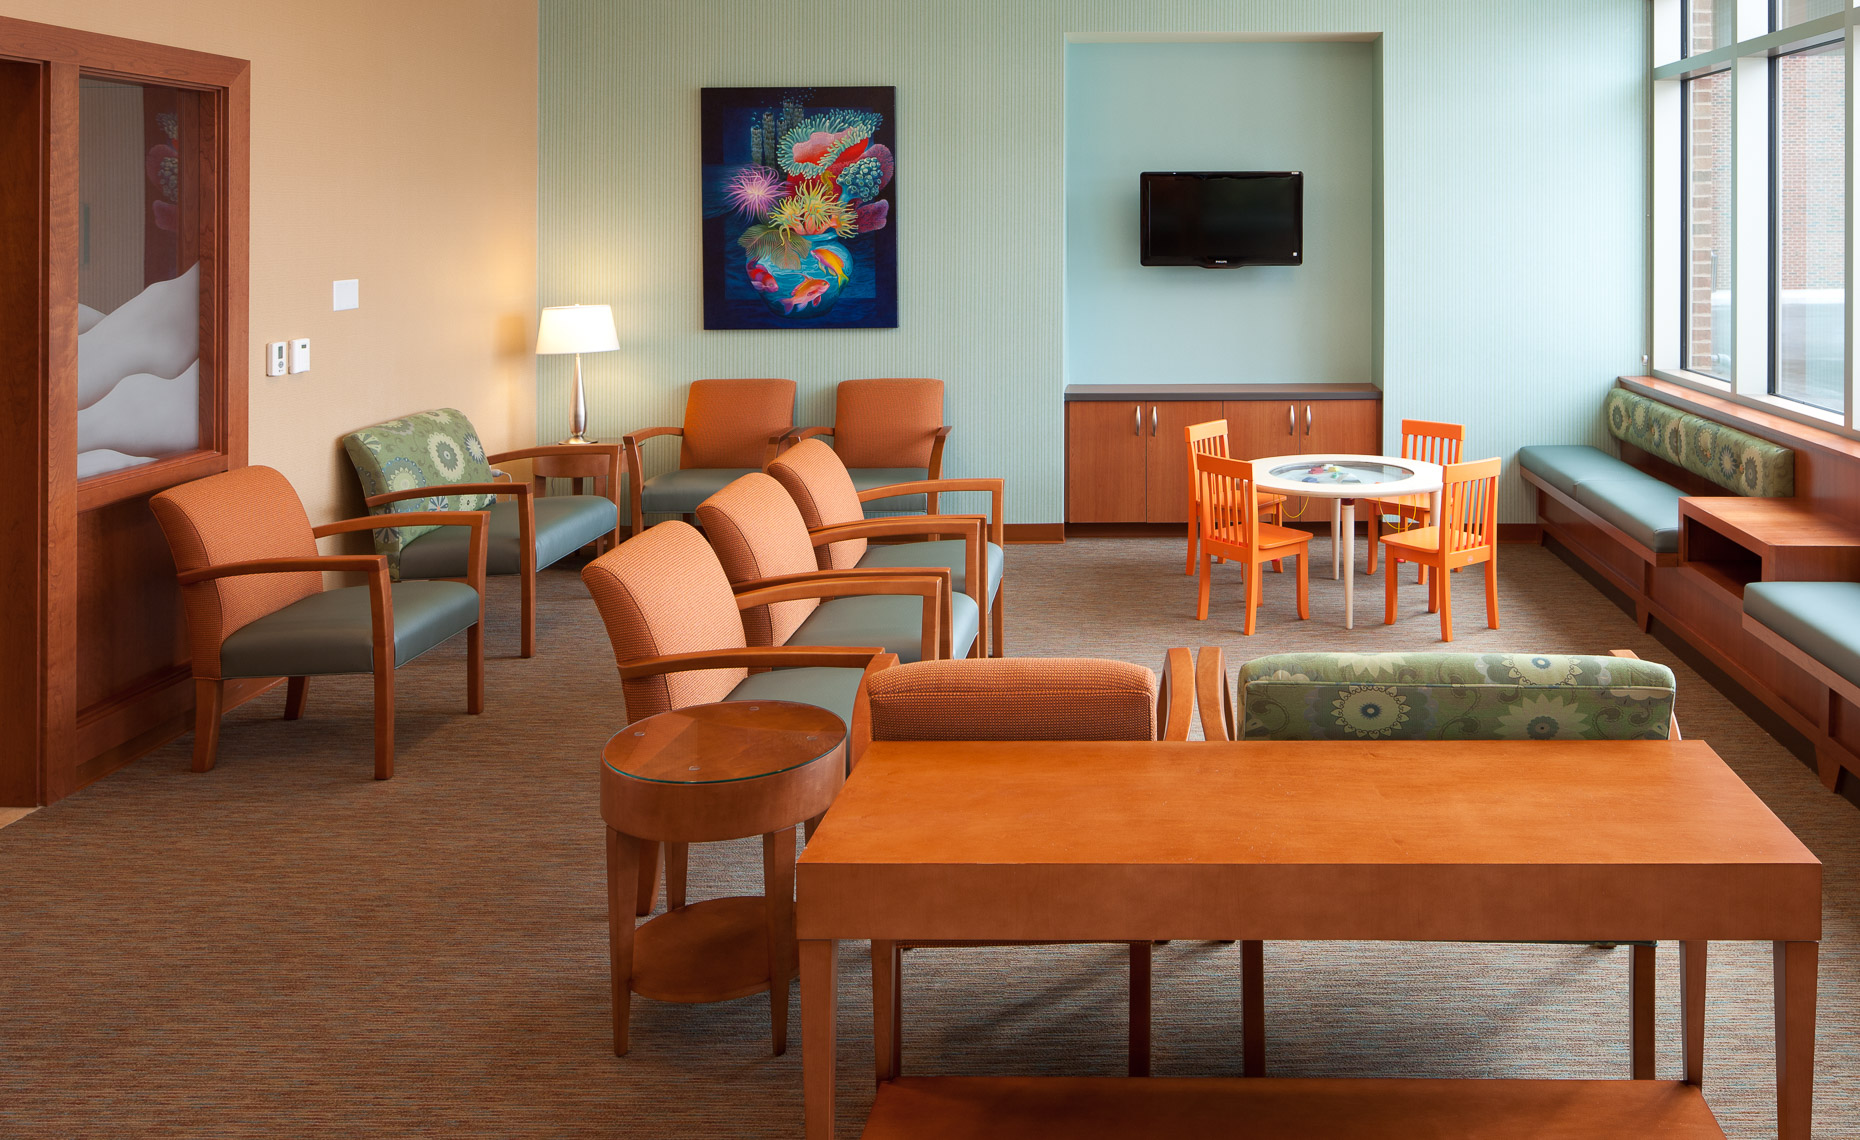 Virginia Hamrick Photography - Hospital Emergency Room Waiting Area